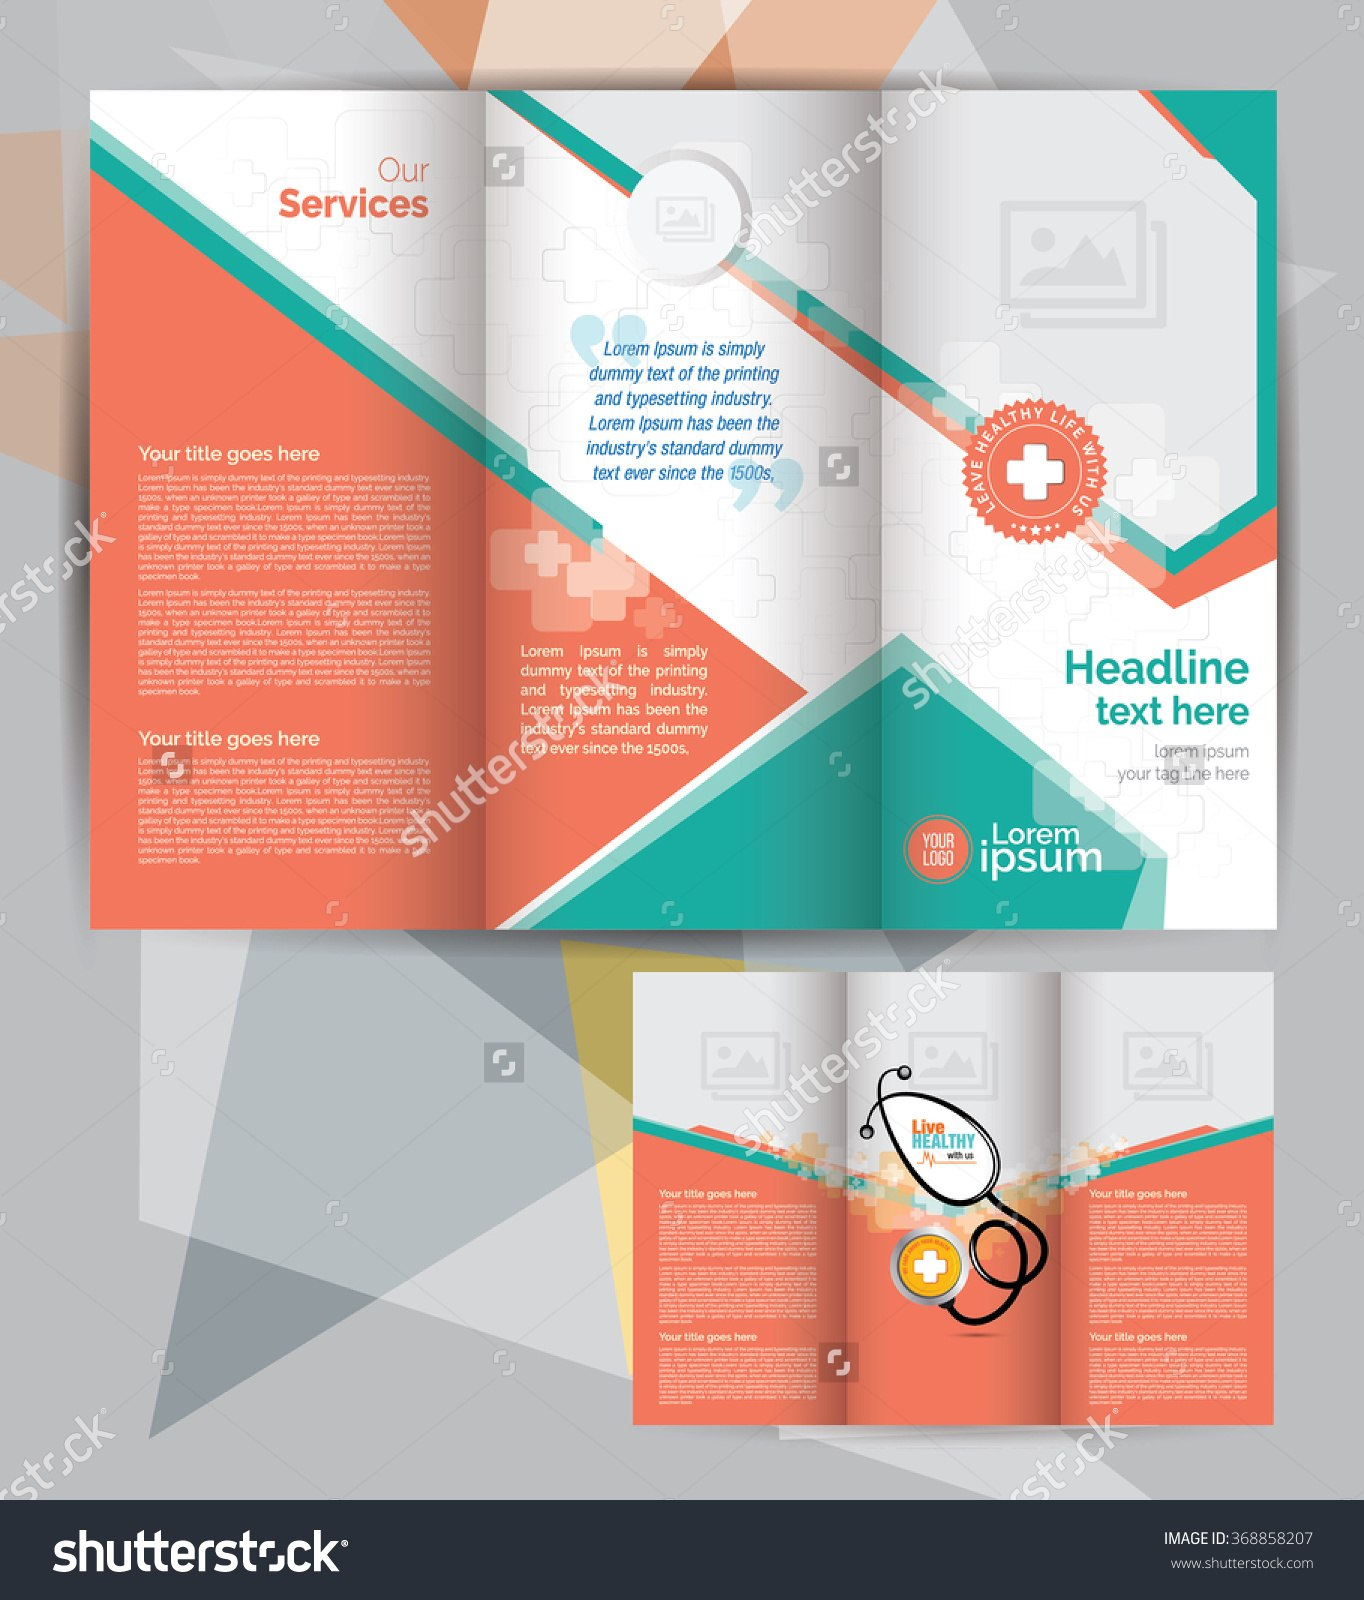 Free Brochure Templates For Word Printable Blank Tri Fold Microsoft For Free Brochure Templates For Word 2010